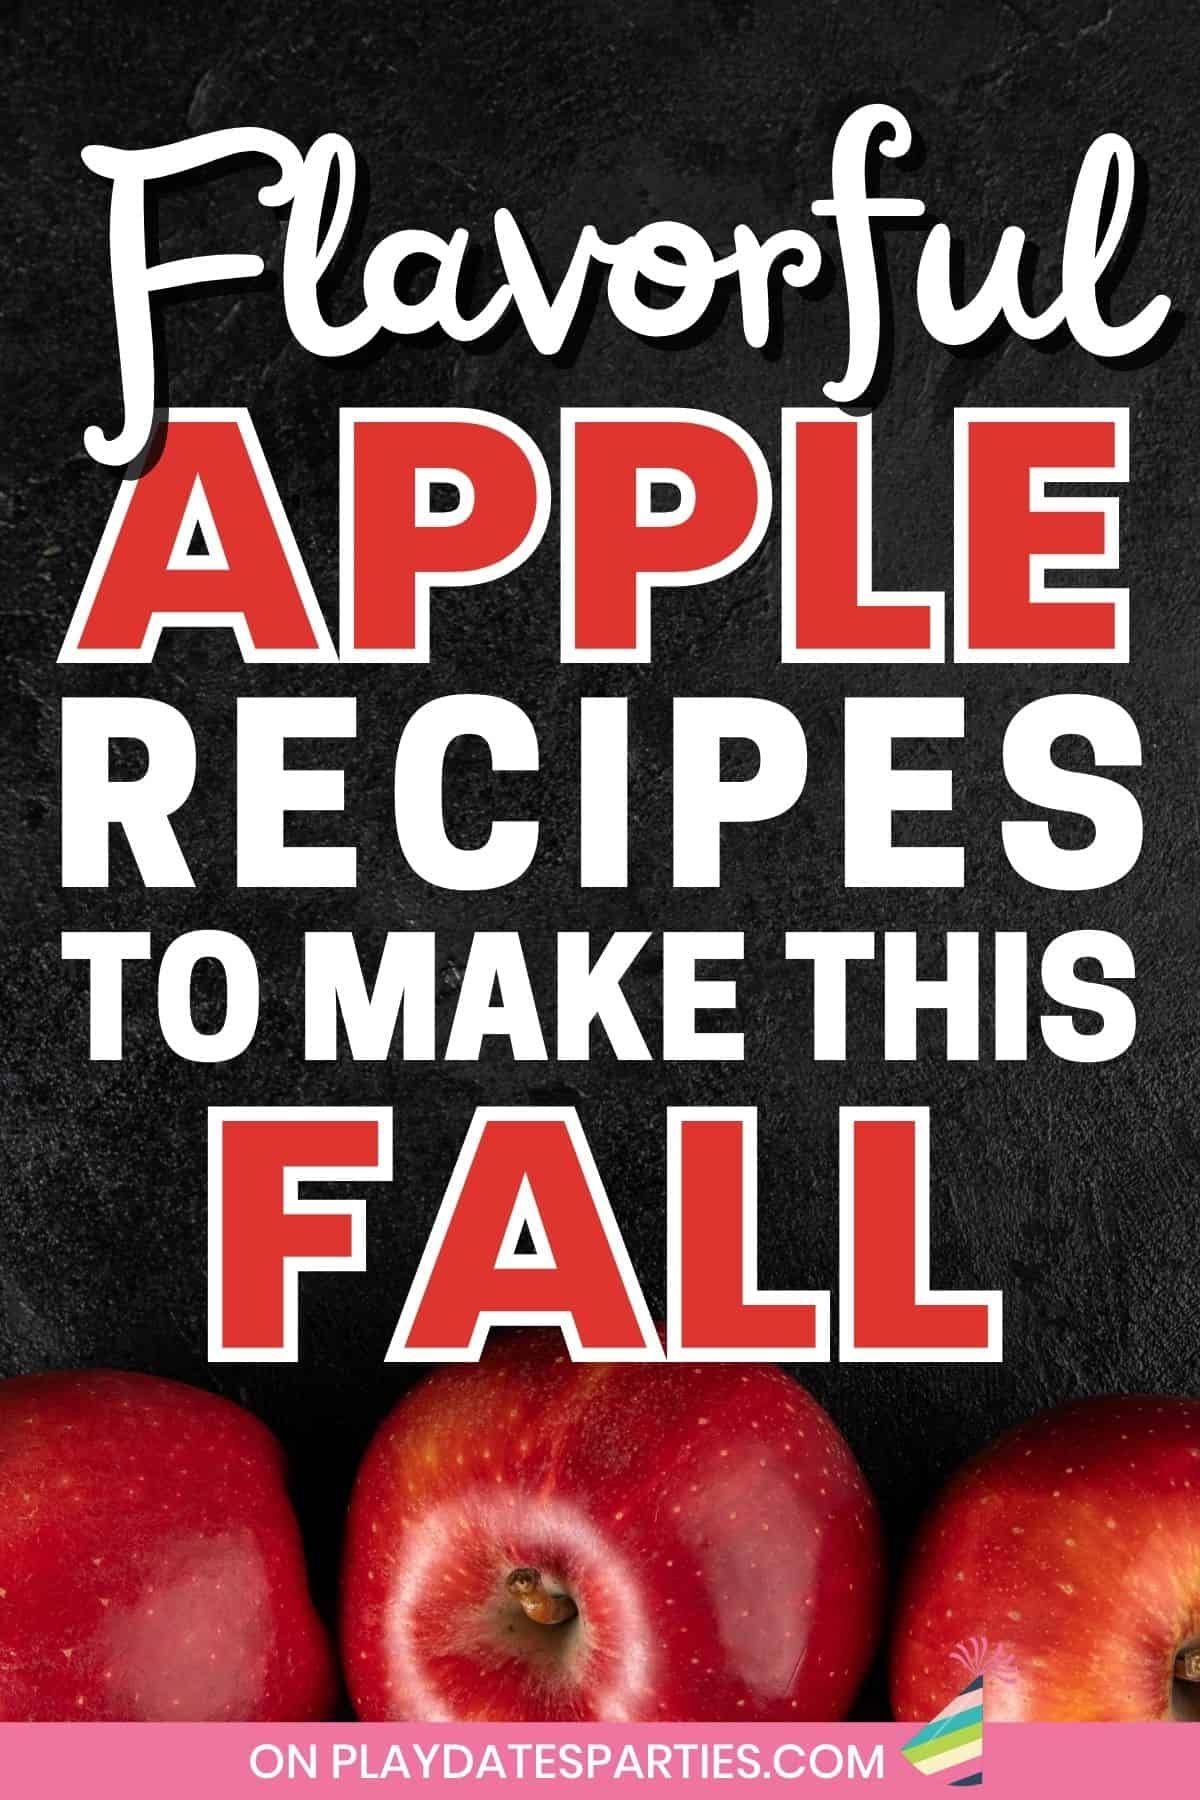 Photo of red apples on a black surface with text overlay Flavorful apple recipes to make this fall.